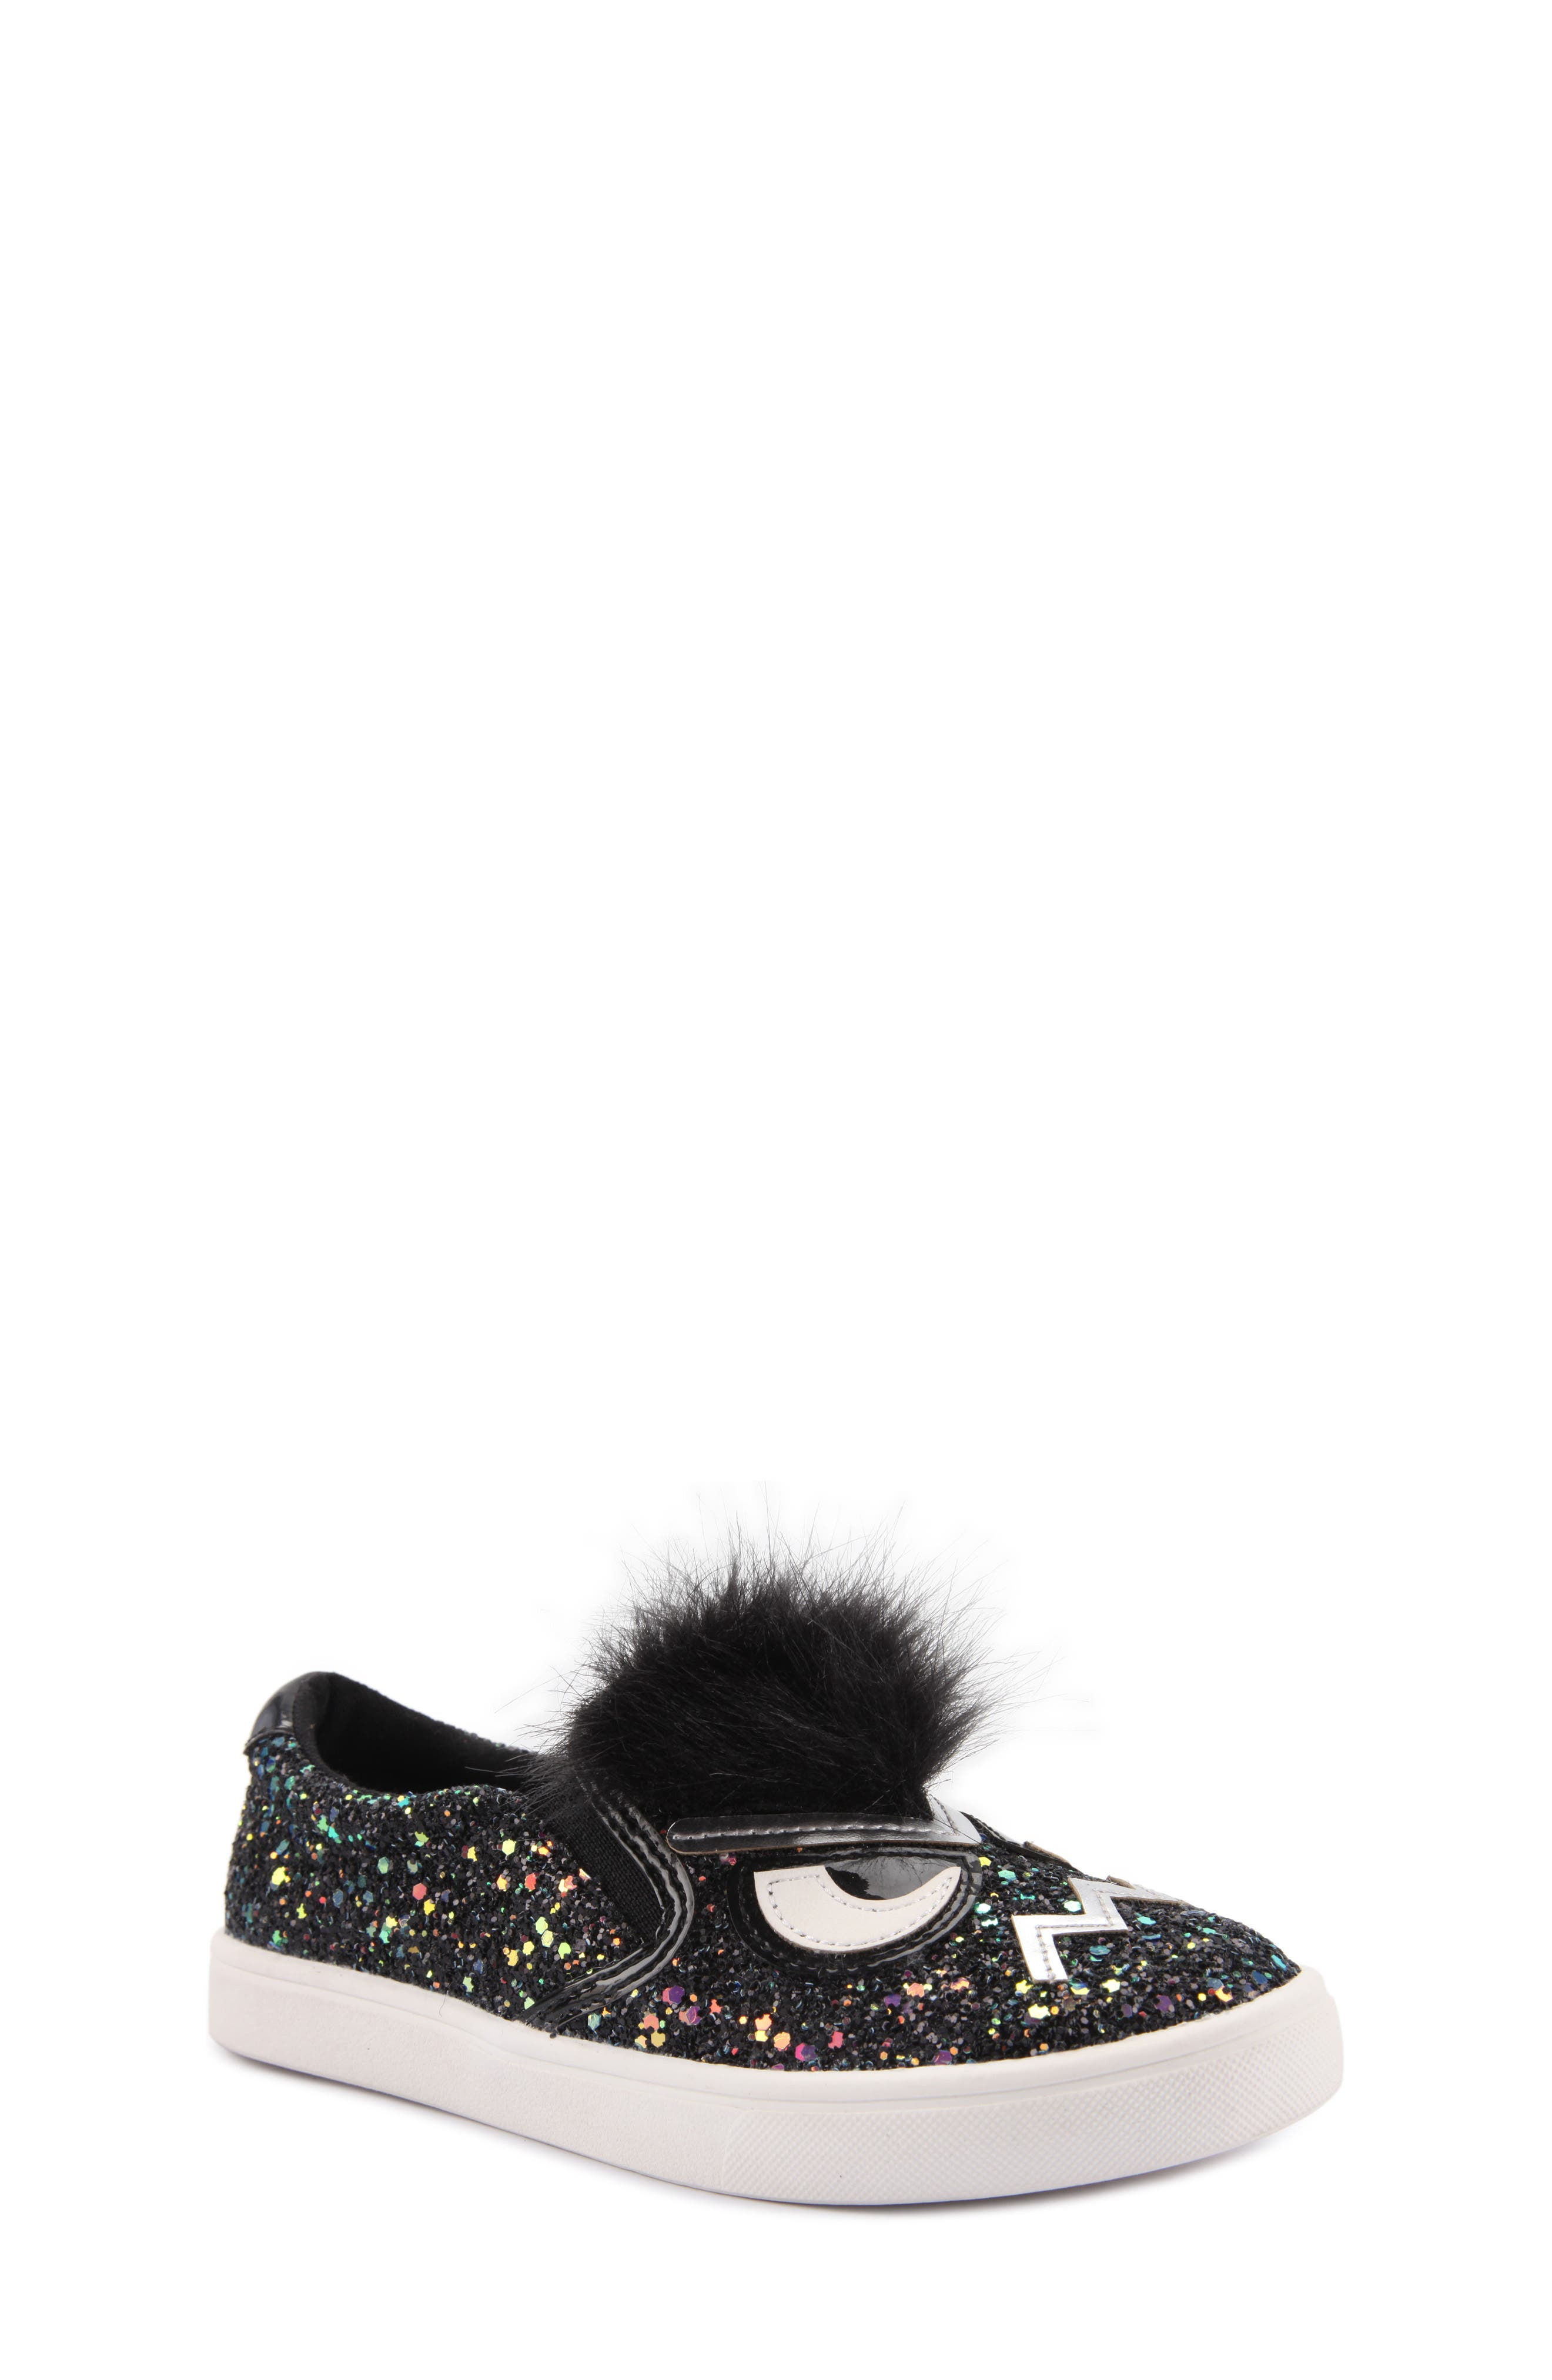 Alyx Faux Fur Glittery Slip-On Sneaker,                             Main thumbnail 1, color,                             Black Chunky Glitter